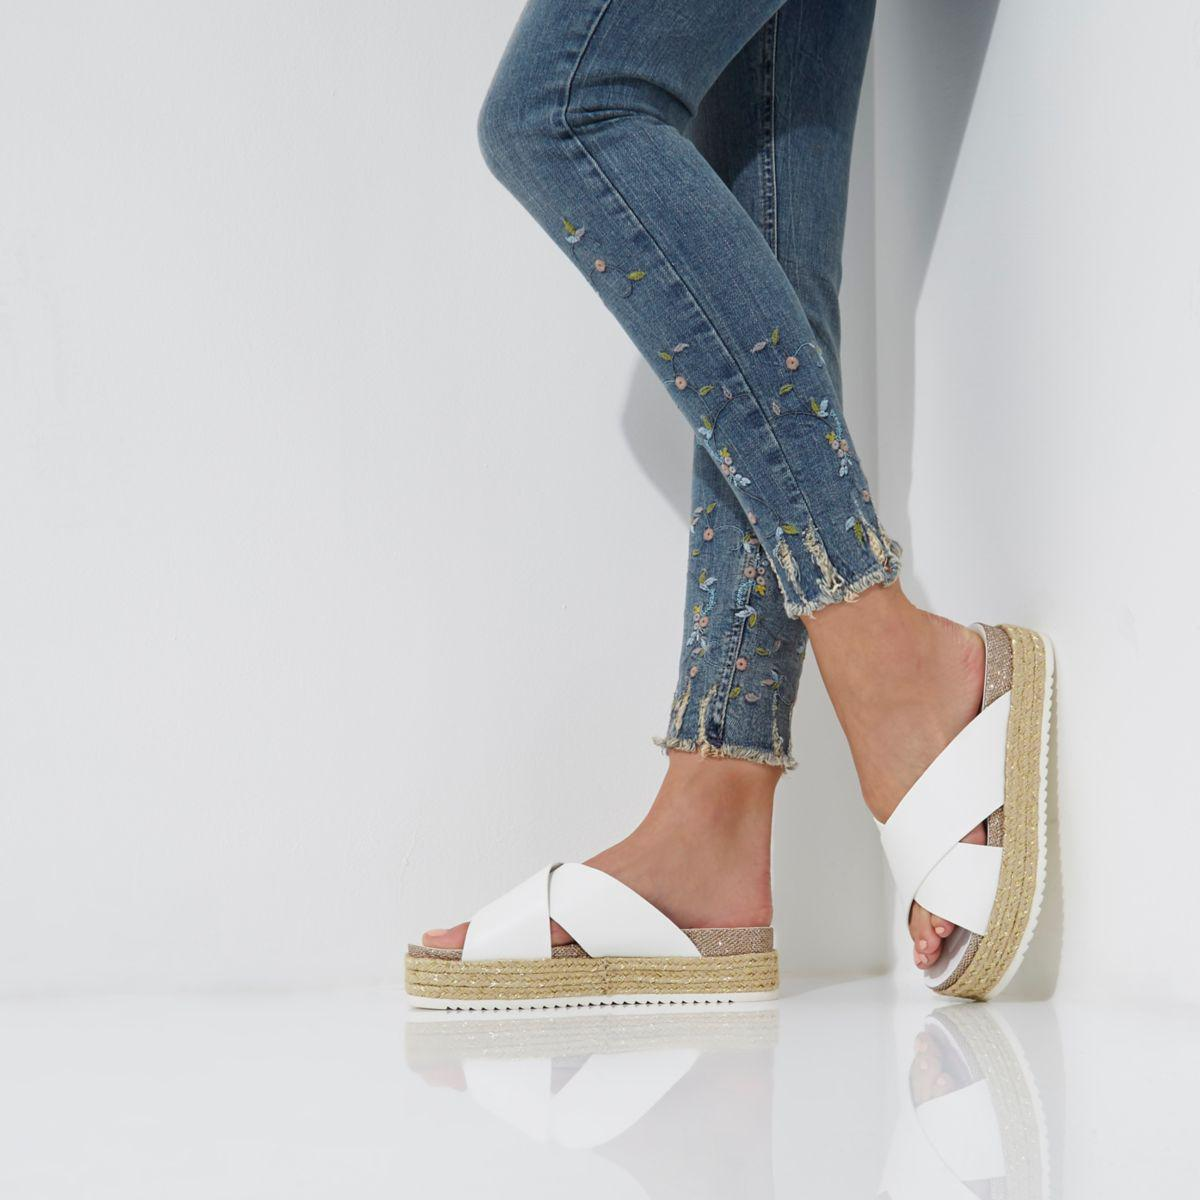 38a0a6587c5 Lyst - River Island White Cross Strap Flatform Espadrilles in White